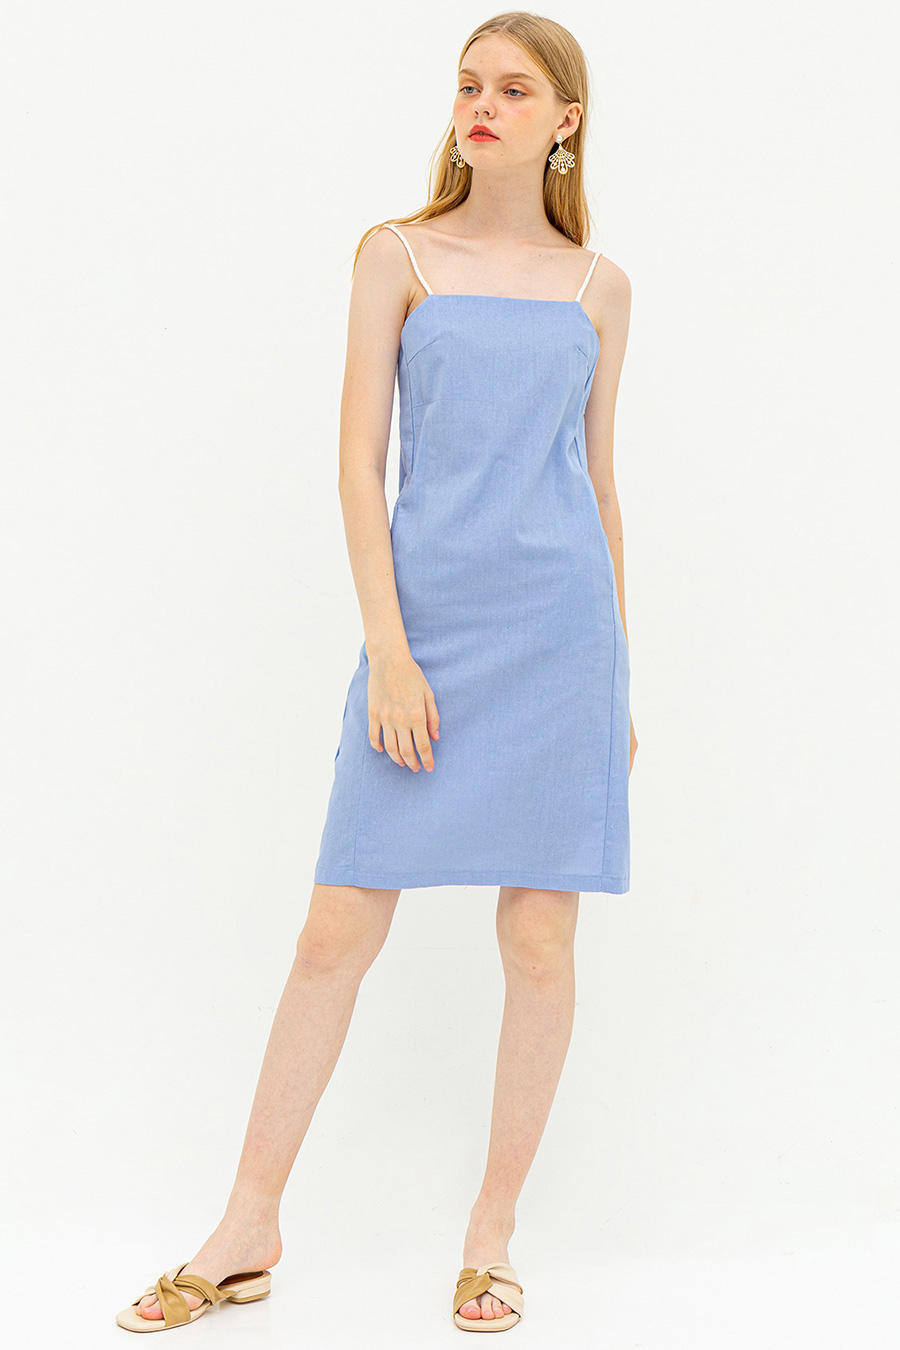 DONNA DRESS - BALMY [BY MODPARADE]